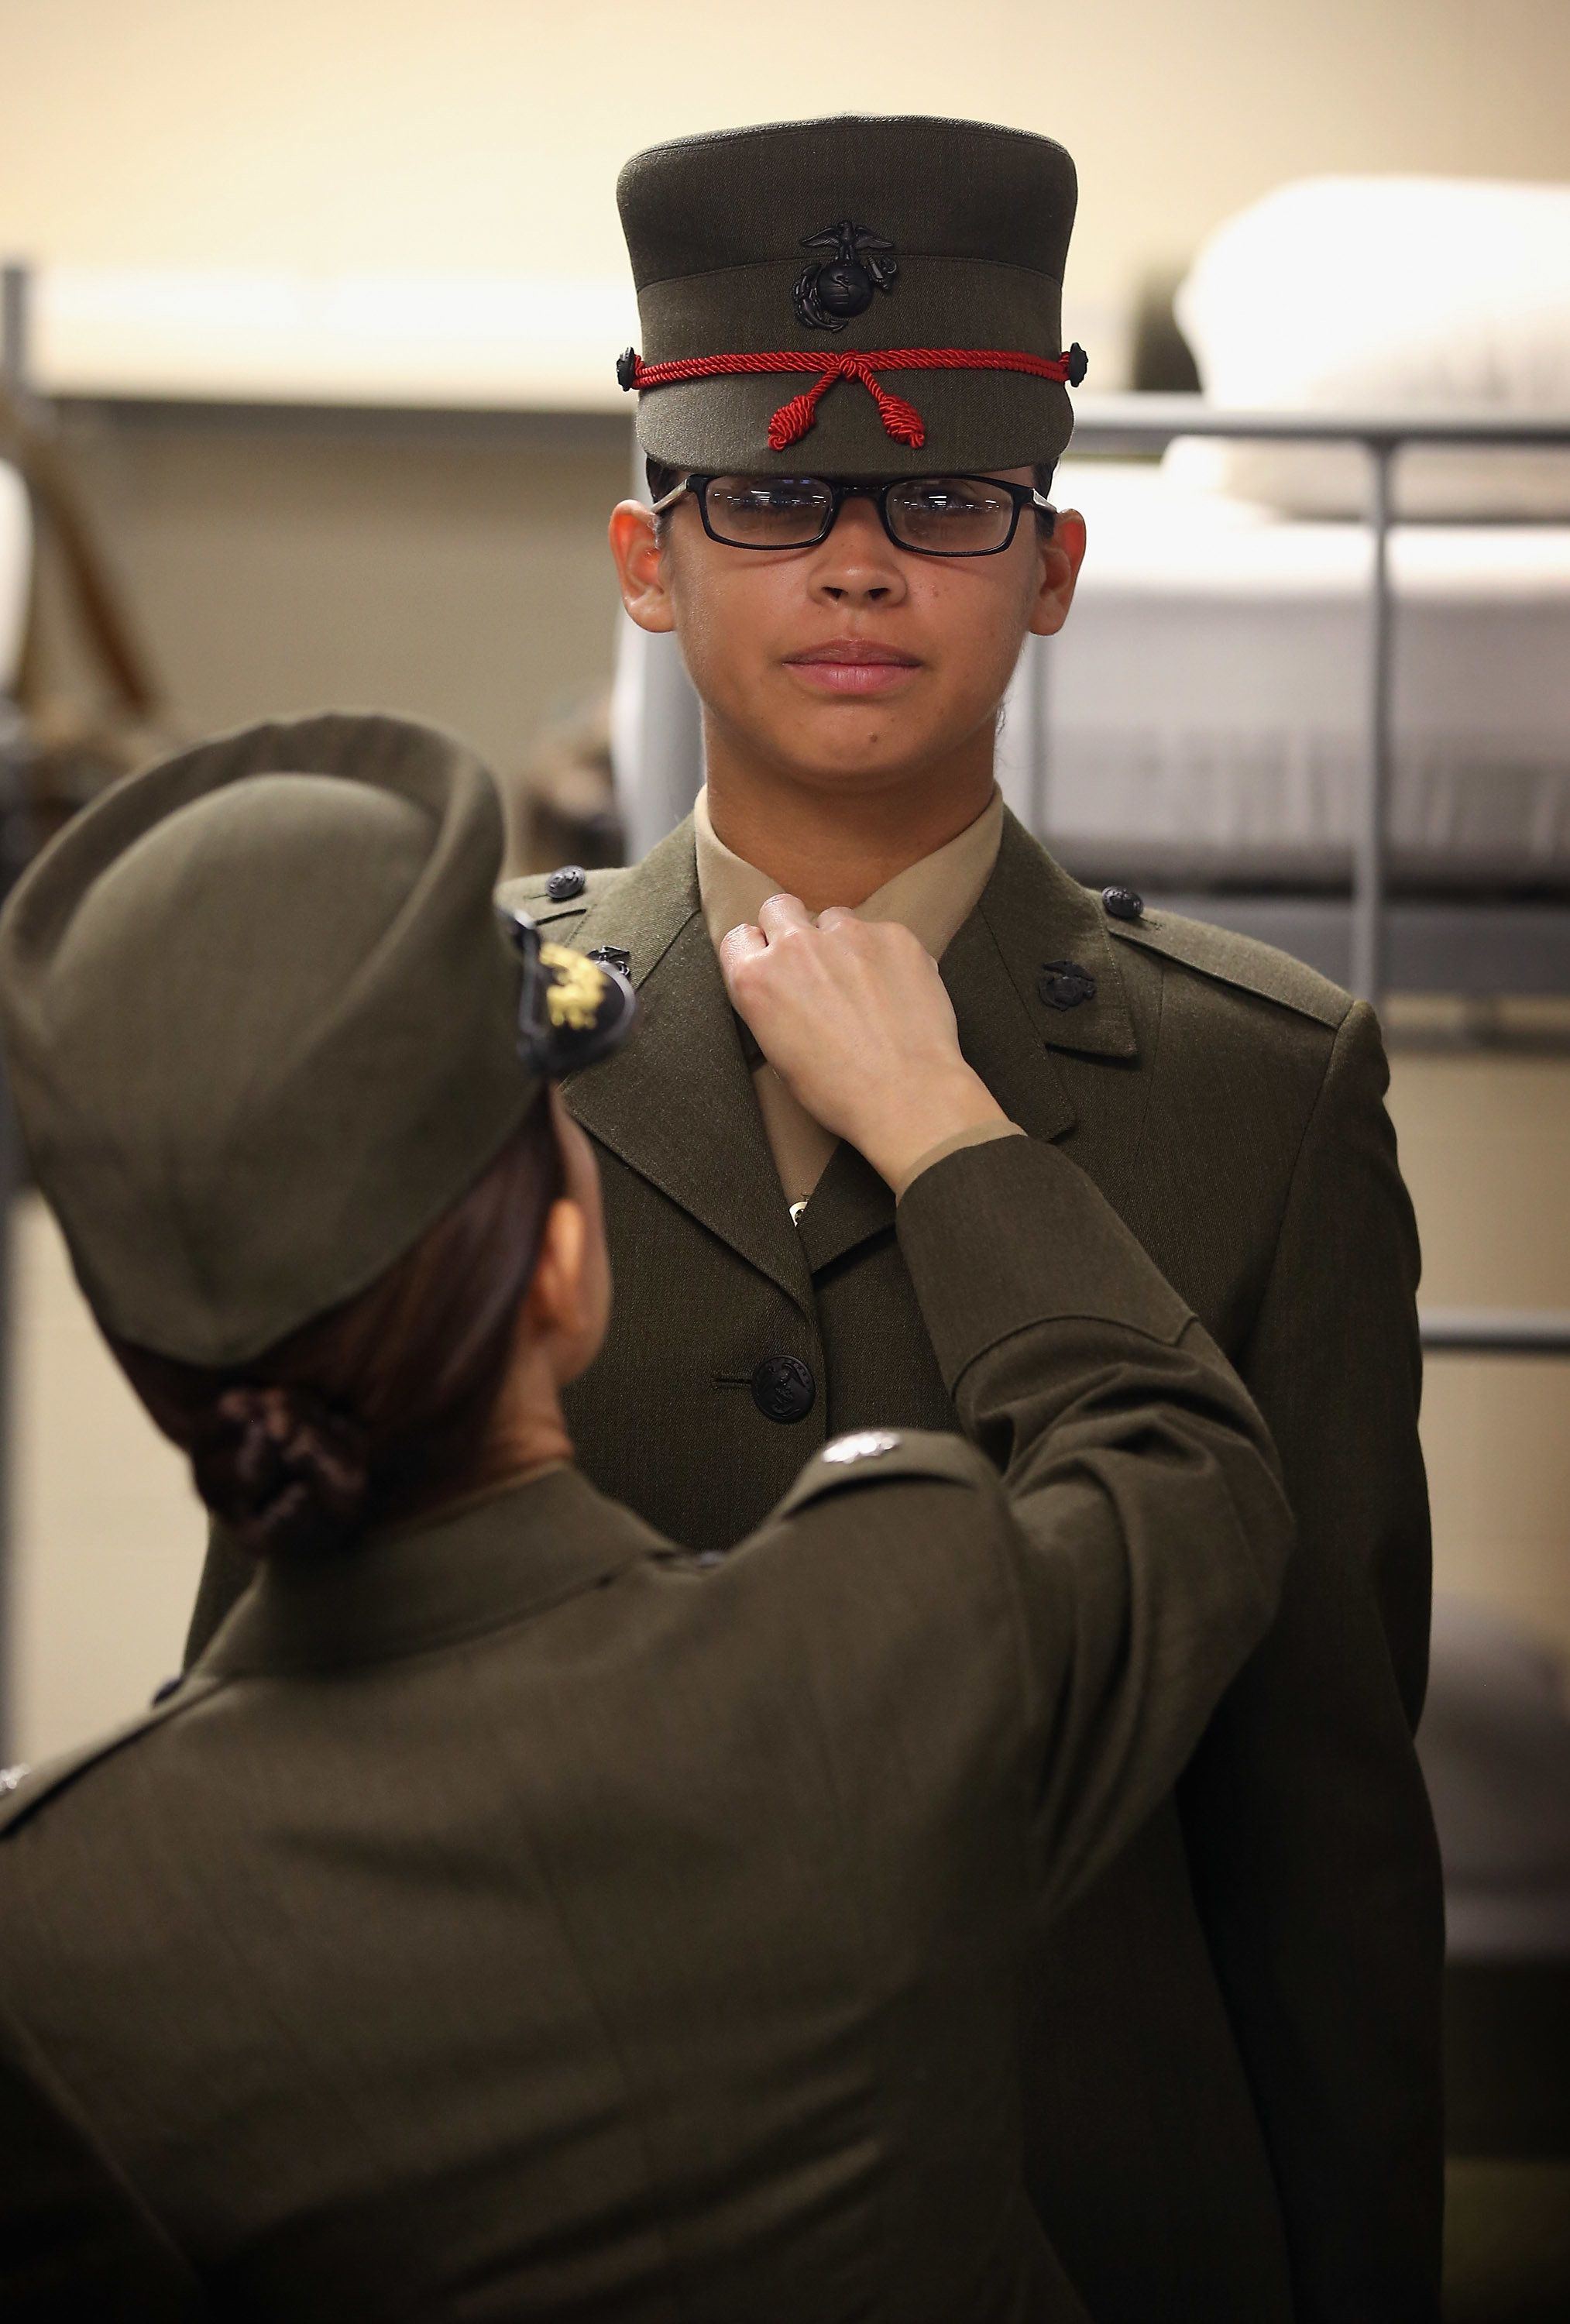 PARRIS ISLAND, SC - FEBRUARY 26: Marine recruit Patricia Quinteros (facing) is inspected by LtCol. Gabrielle Hermes in the final days of her boot camp training February 26, 2013 at MCRD Parris Island, South Carolina. Female enlisted Marines have gone through recruit training at the base since 1949. About 11 percent of female recruits who arrive at the boot camp fail to complete the training, which can be physically and mentally demanding. On January 24, 2013 Secretary of Defense Leon Panetta rescinded an order, which had been in place since 1994, that restricted women from being attached to ground combat units. About six percent of enlisted Marines are female.  (Photo by Scott Olson/Getty Images)